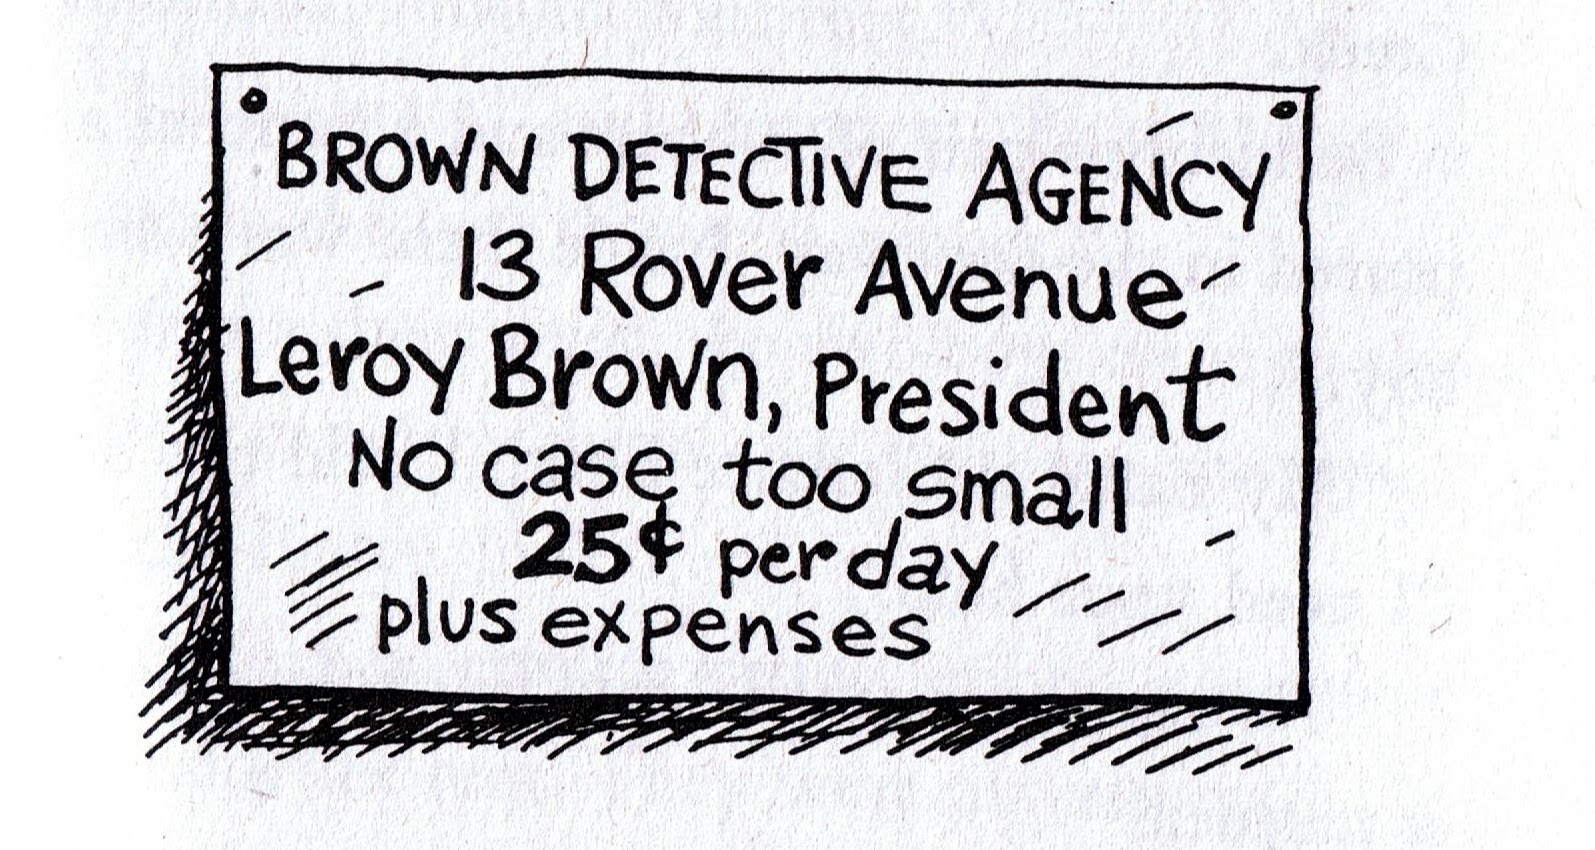 browndetectiveagency